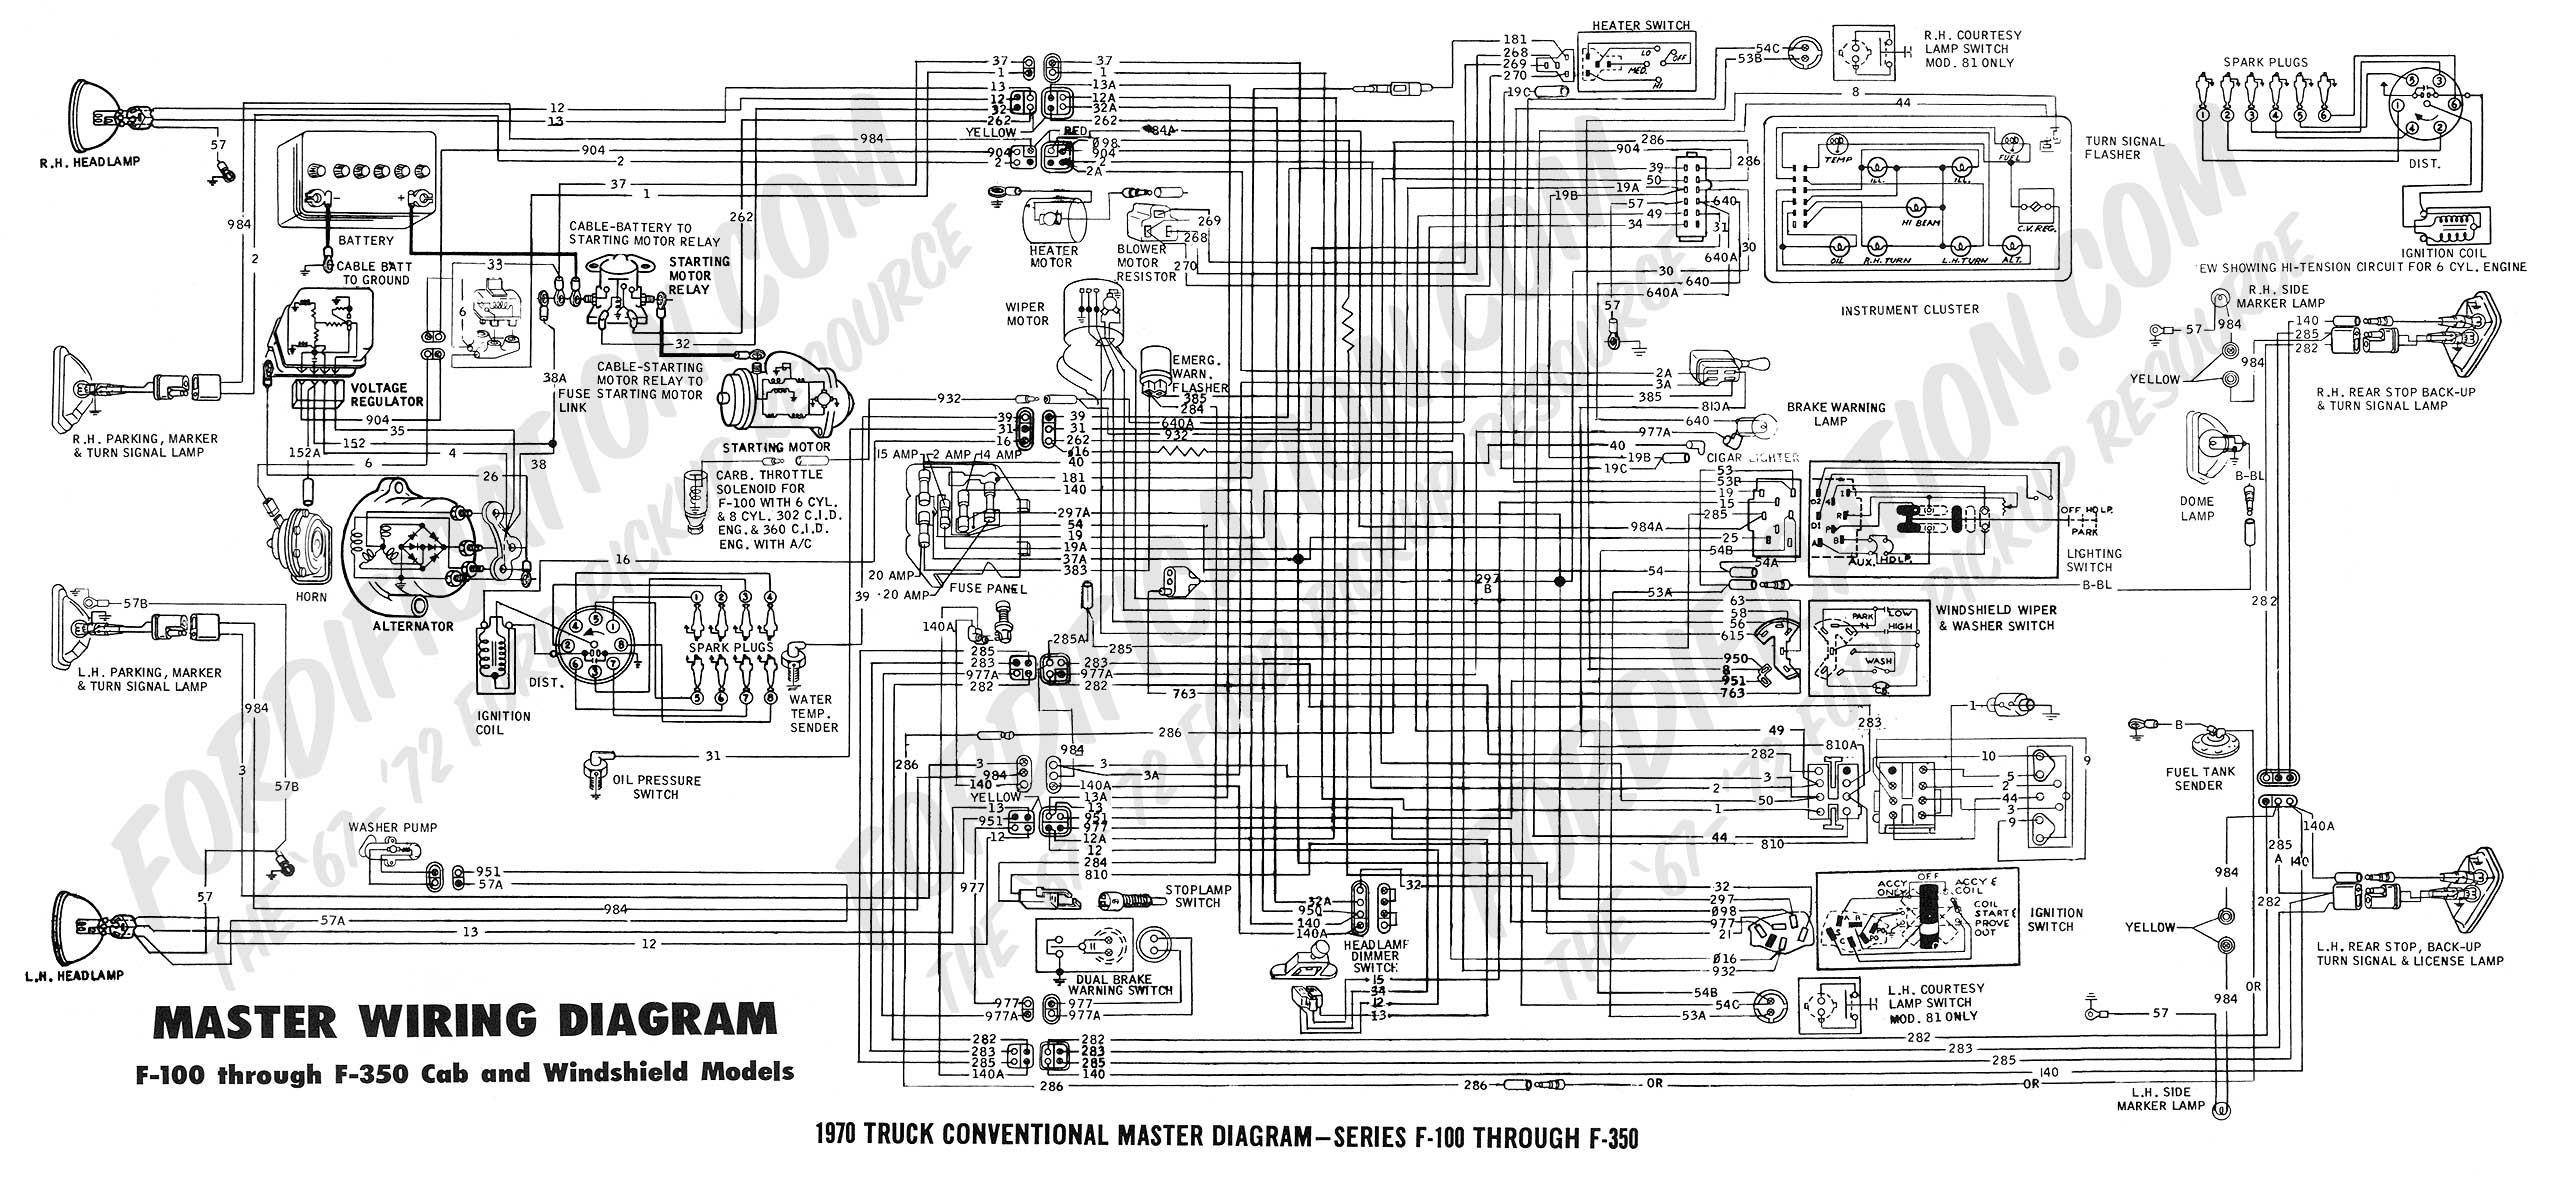 96 f150 wiring diagram 94 f150 wiring diagram 94 wiring diagrams